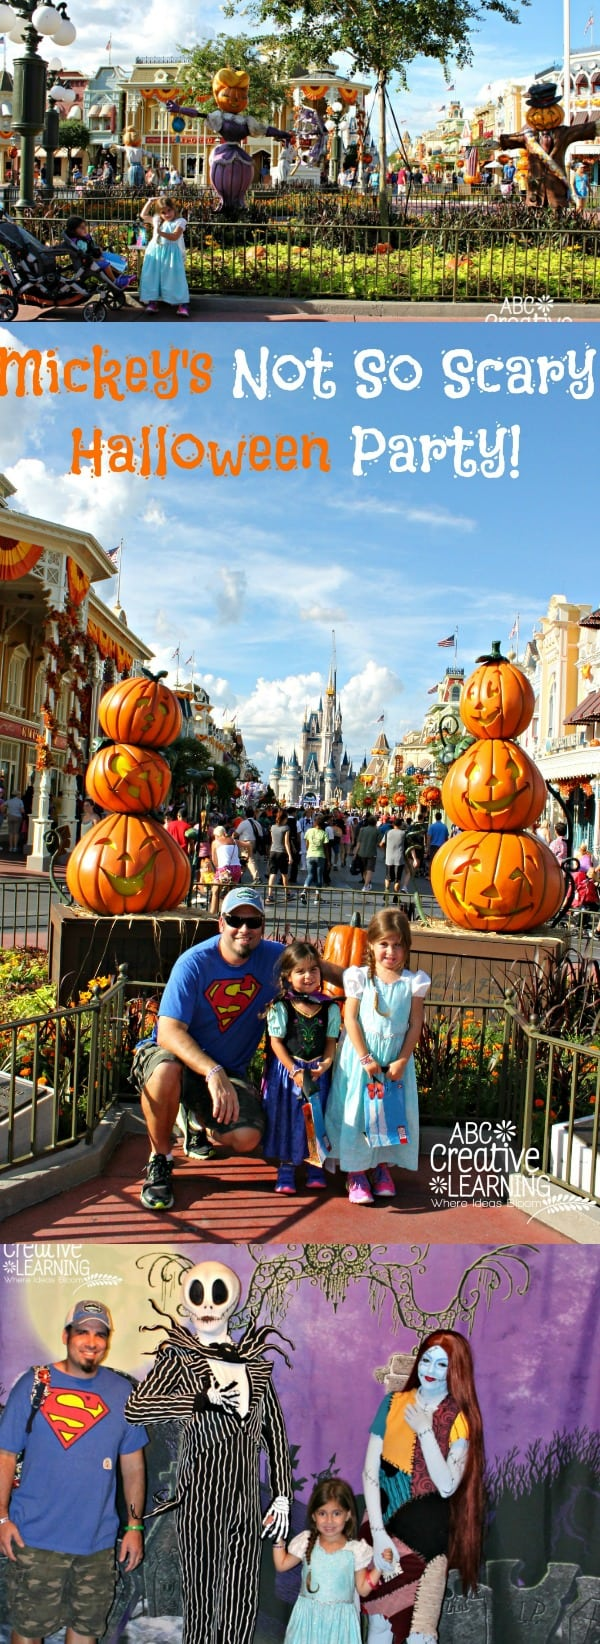 Our First Mickey's Not So Scary Halloween Party